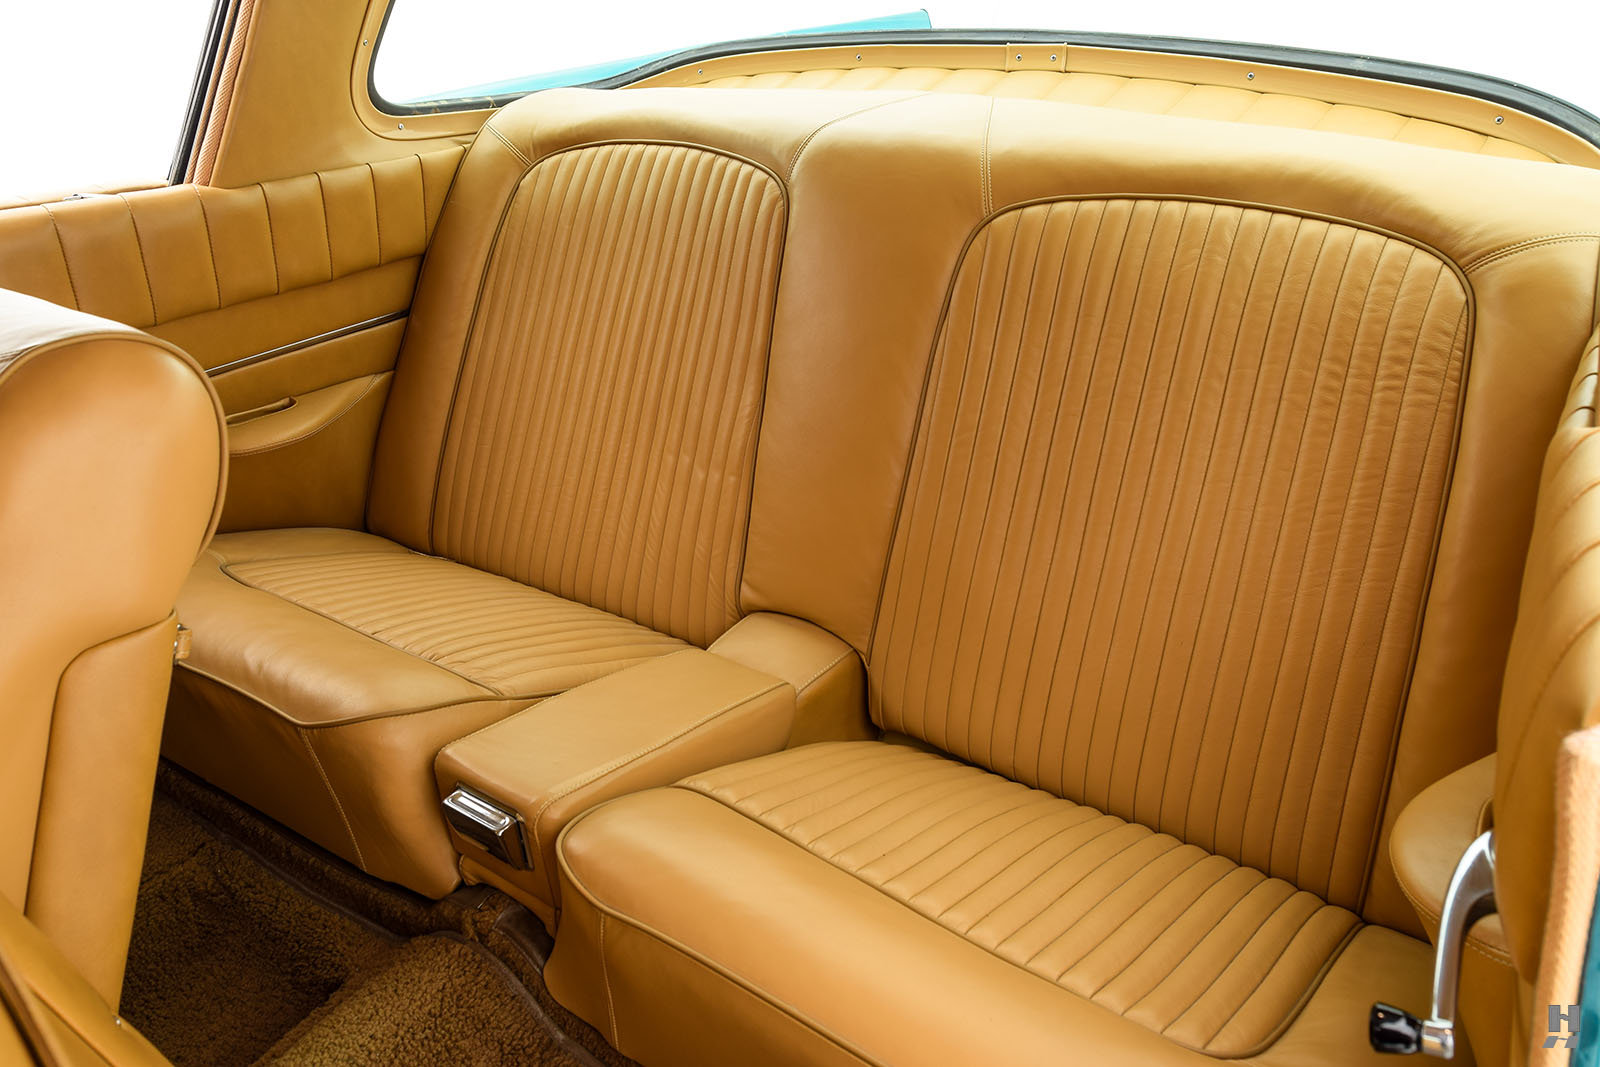 1958 PACKARD HAWK COUPE For Sale (picture 6 of 6)